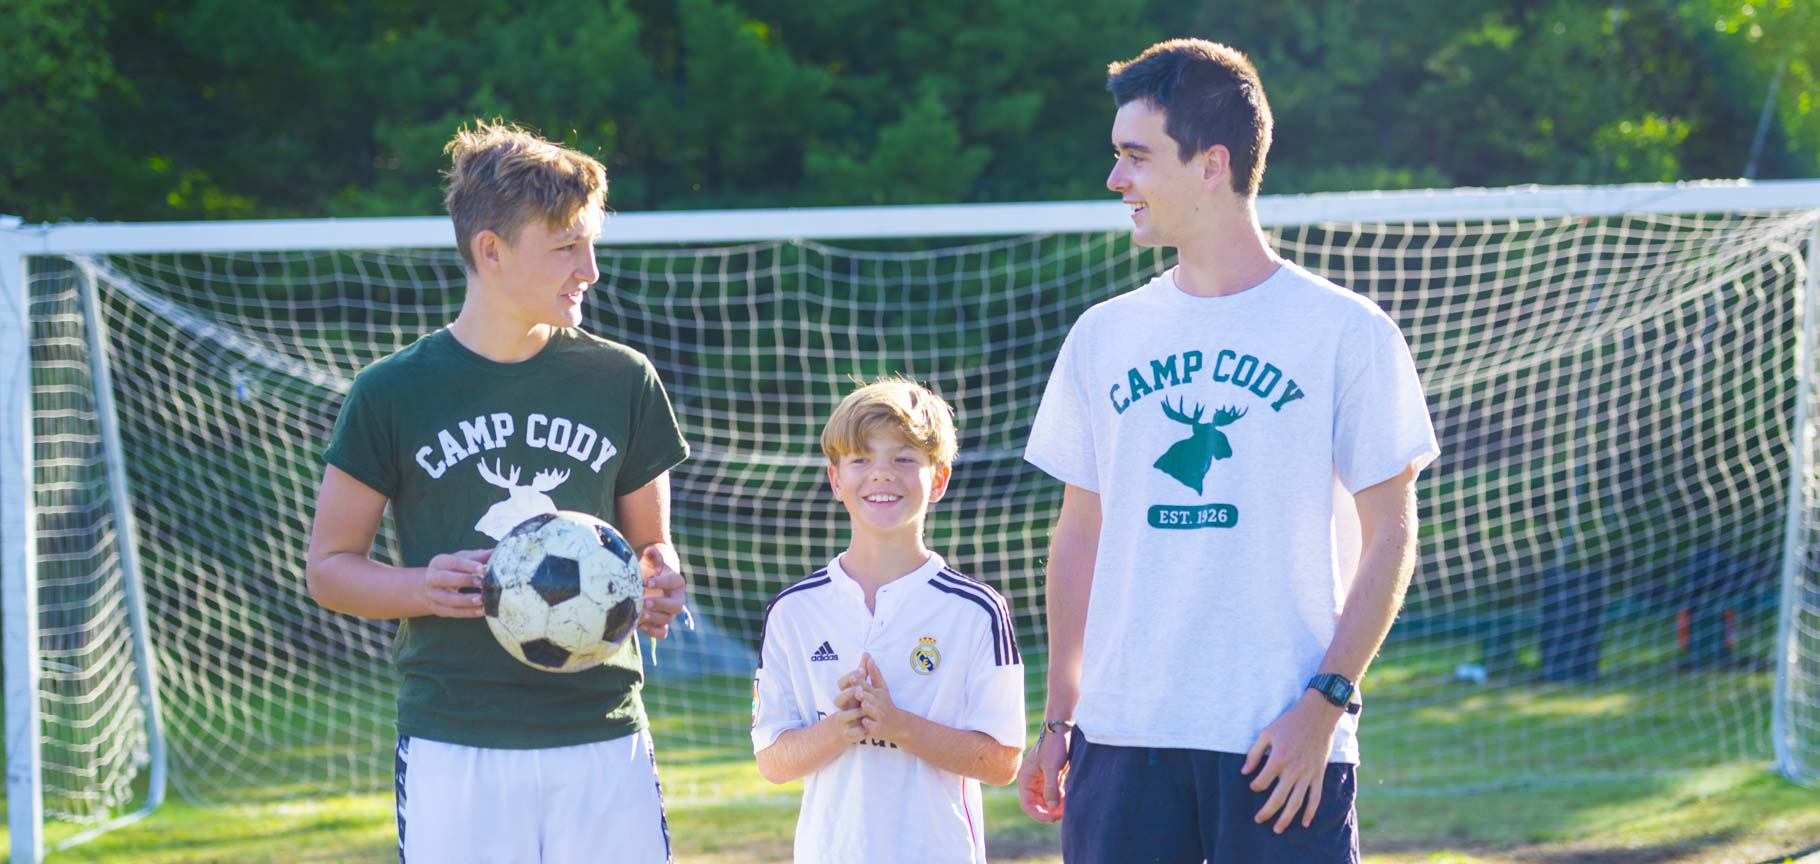 Soccer coaches and camper at summer camp